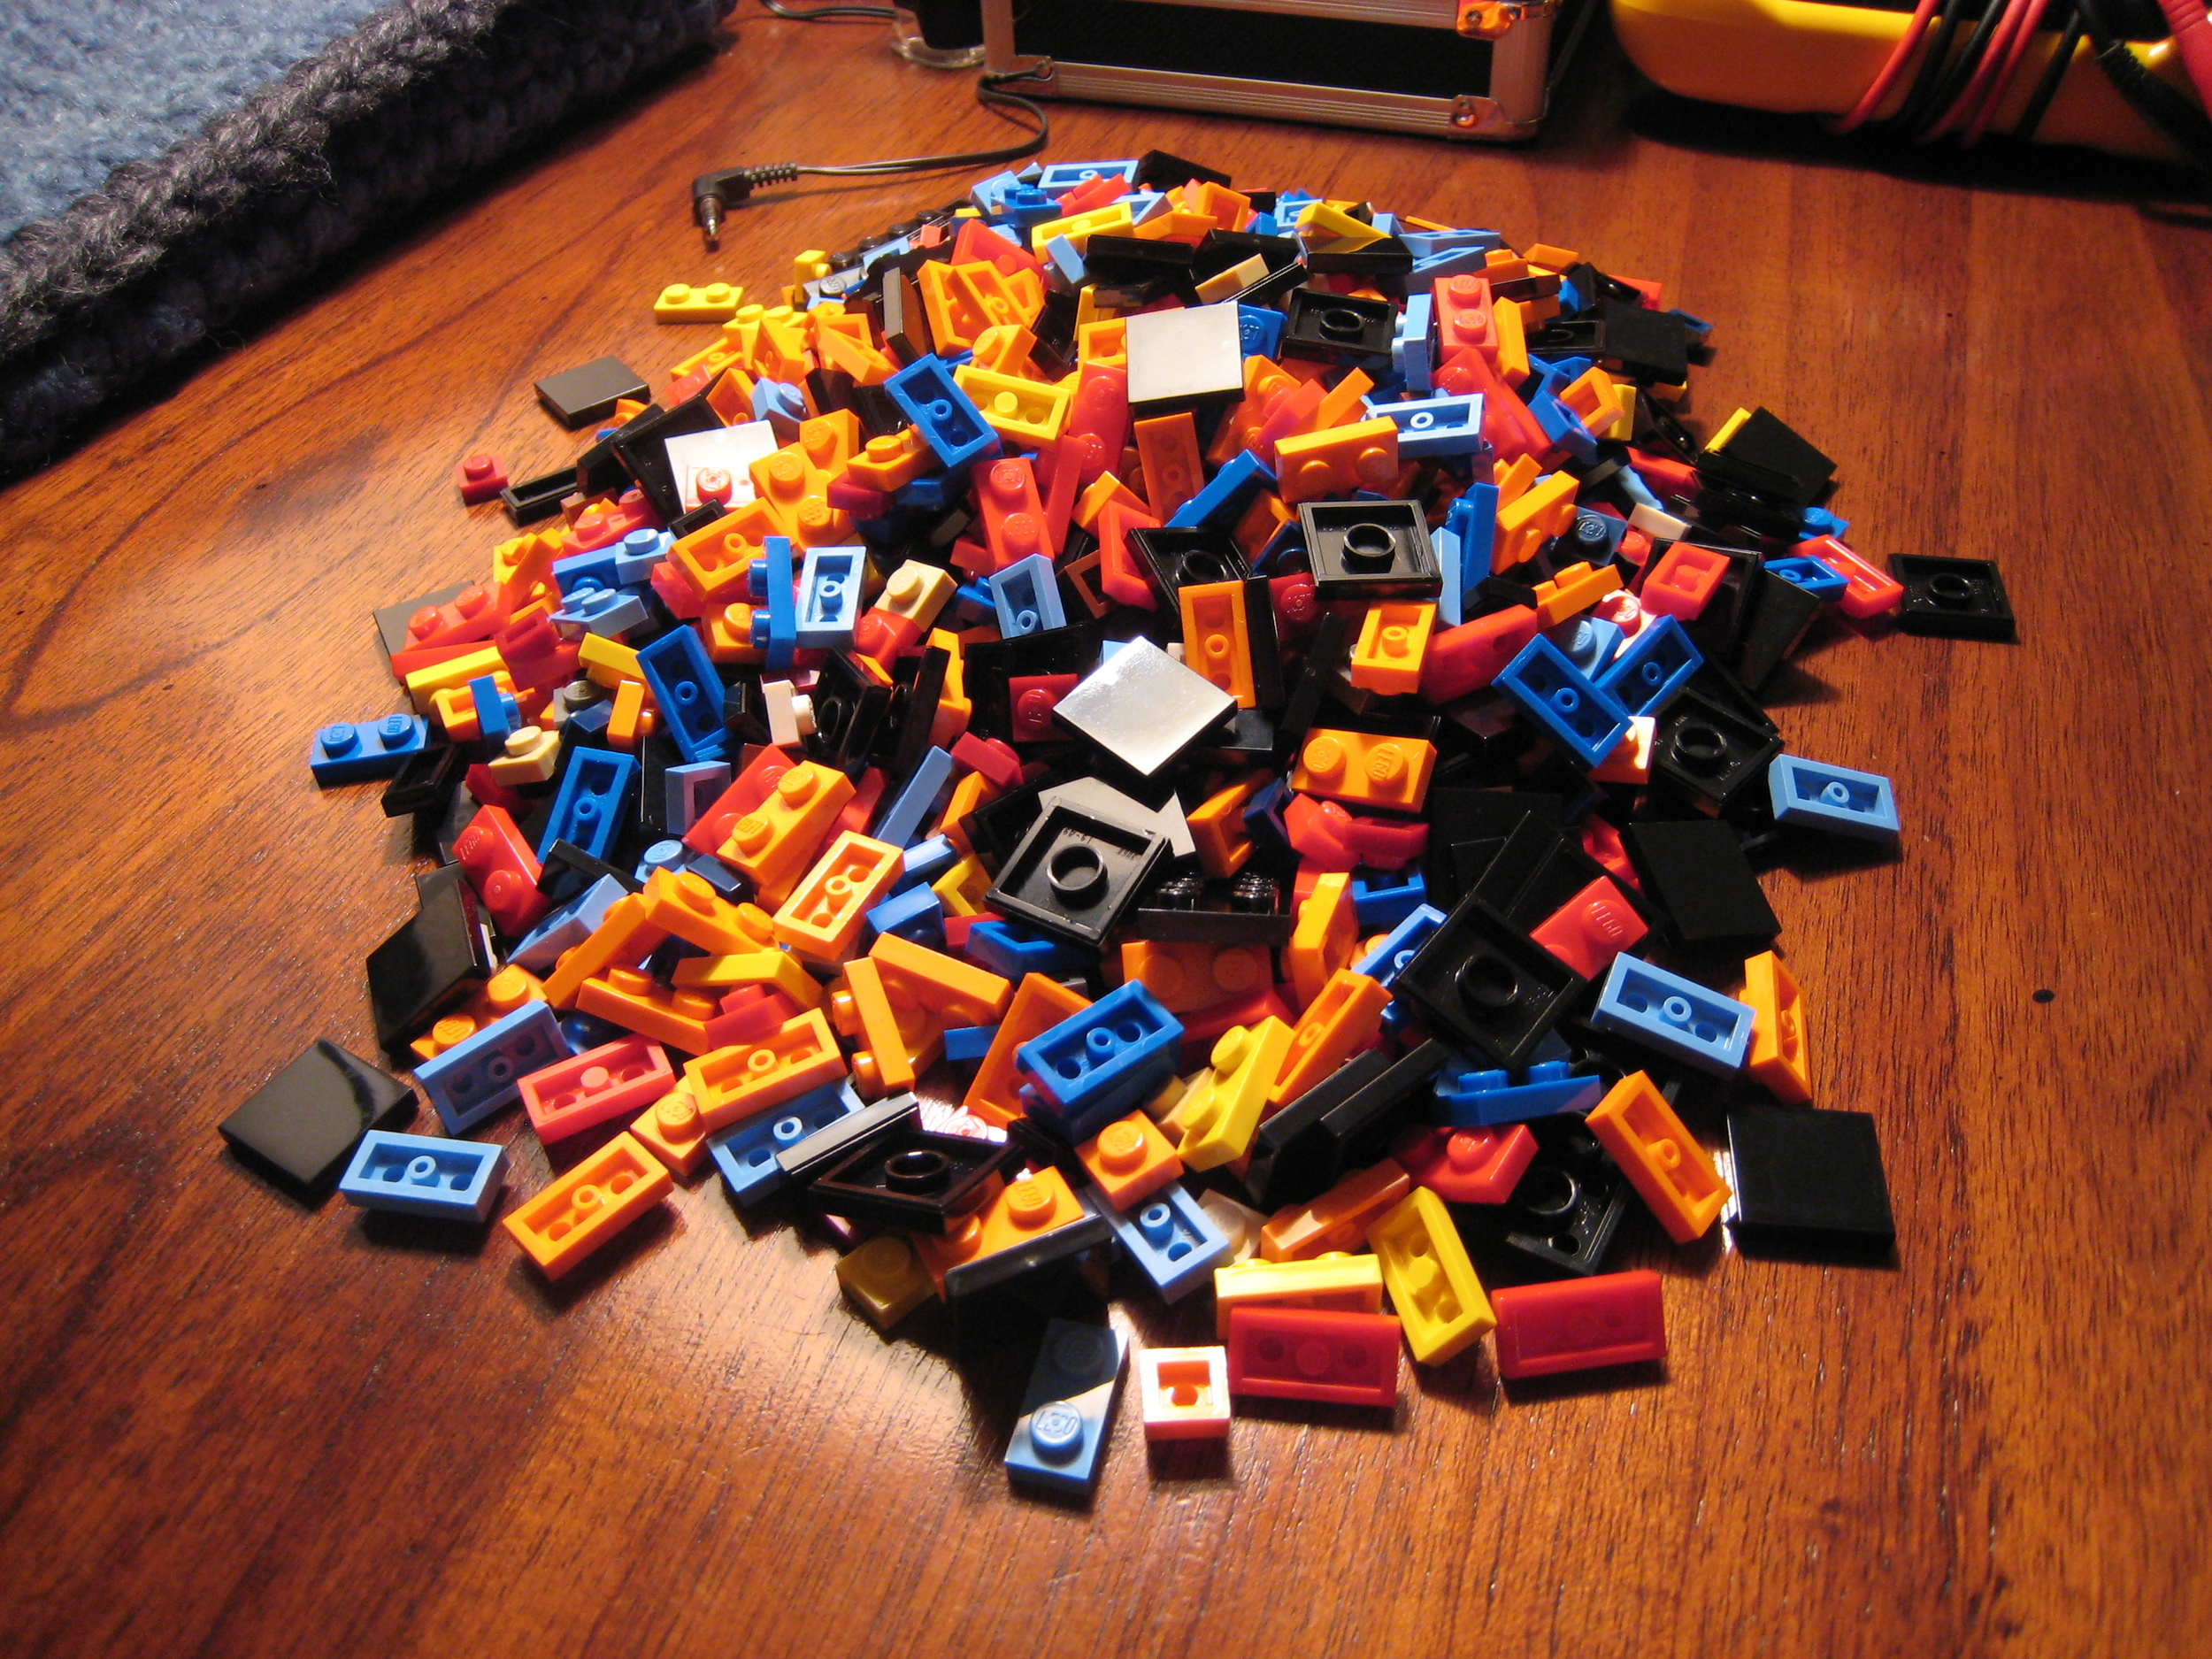 Materials science has lots of options for building. - Image Credit: dolske/flickr , CC BY-SA